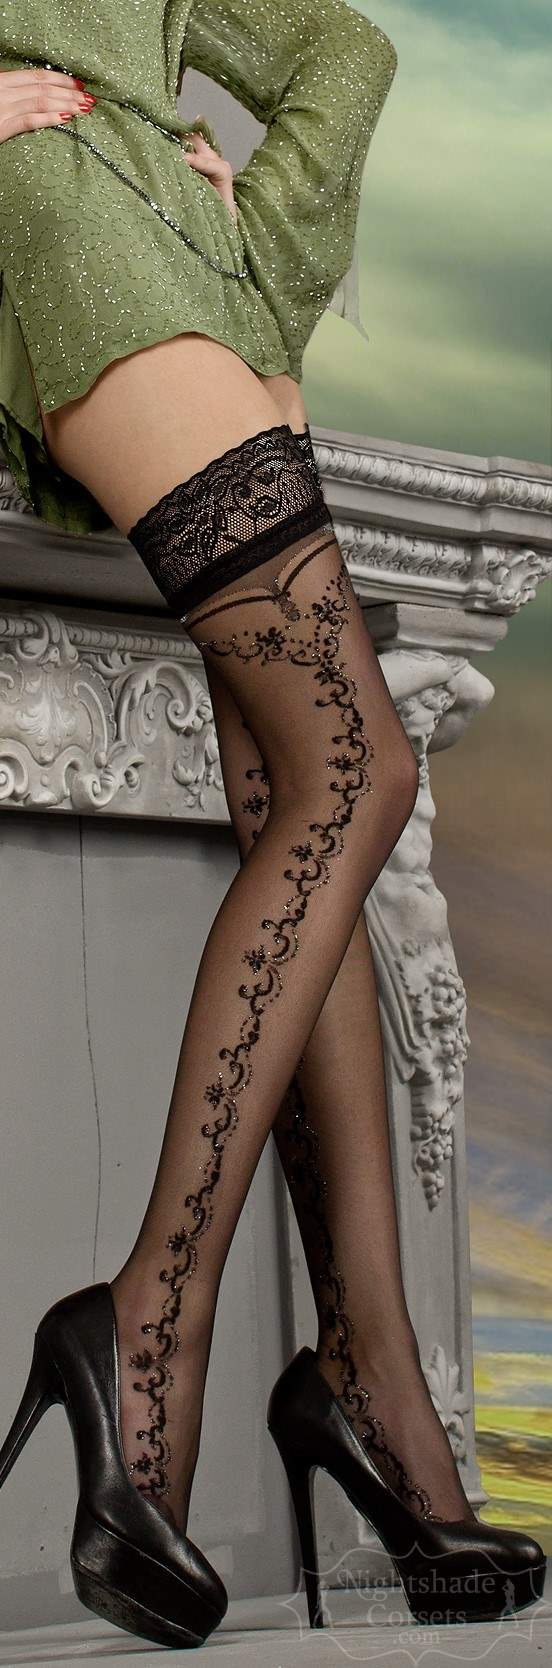 European-made stay-up stockings black design silver detailing 0216 Edmonton